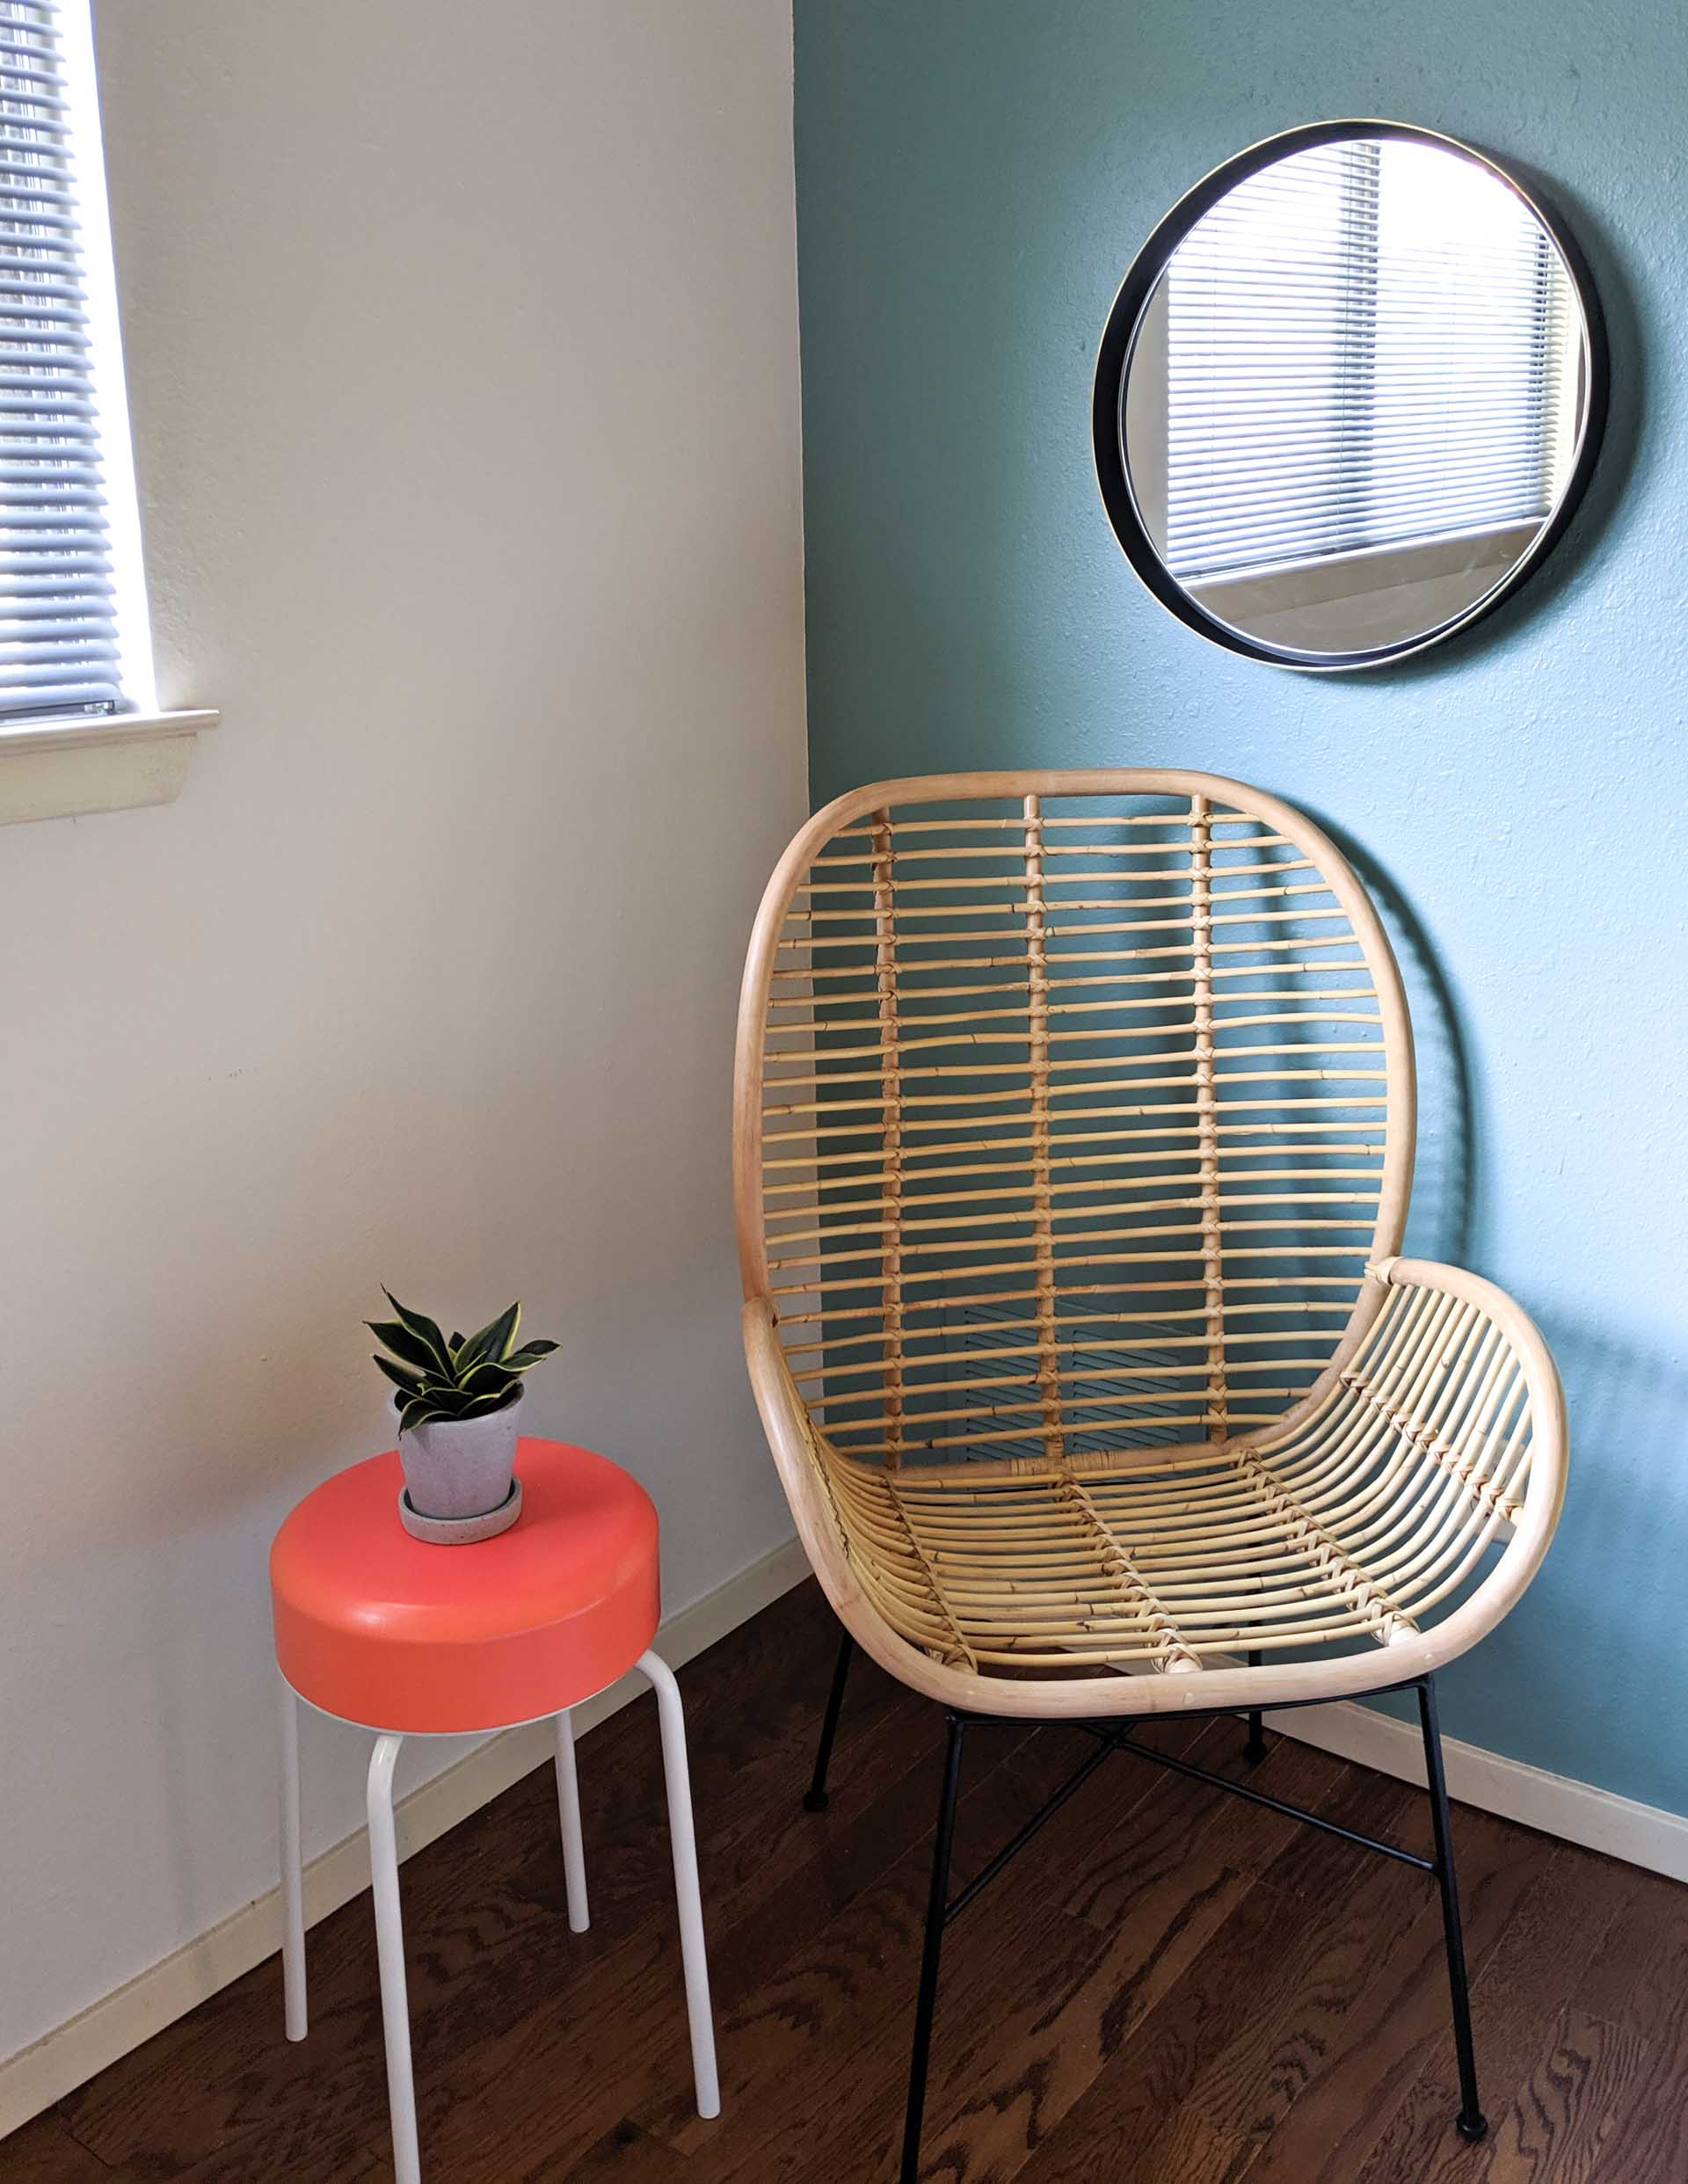 Less is more design with a rattan chair